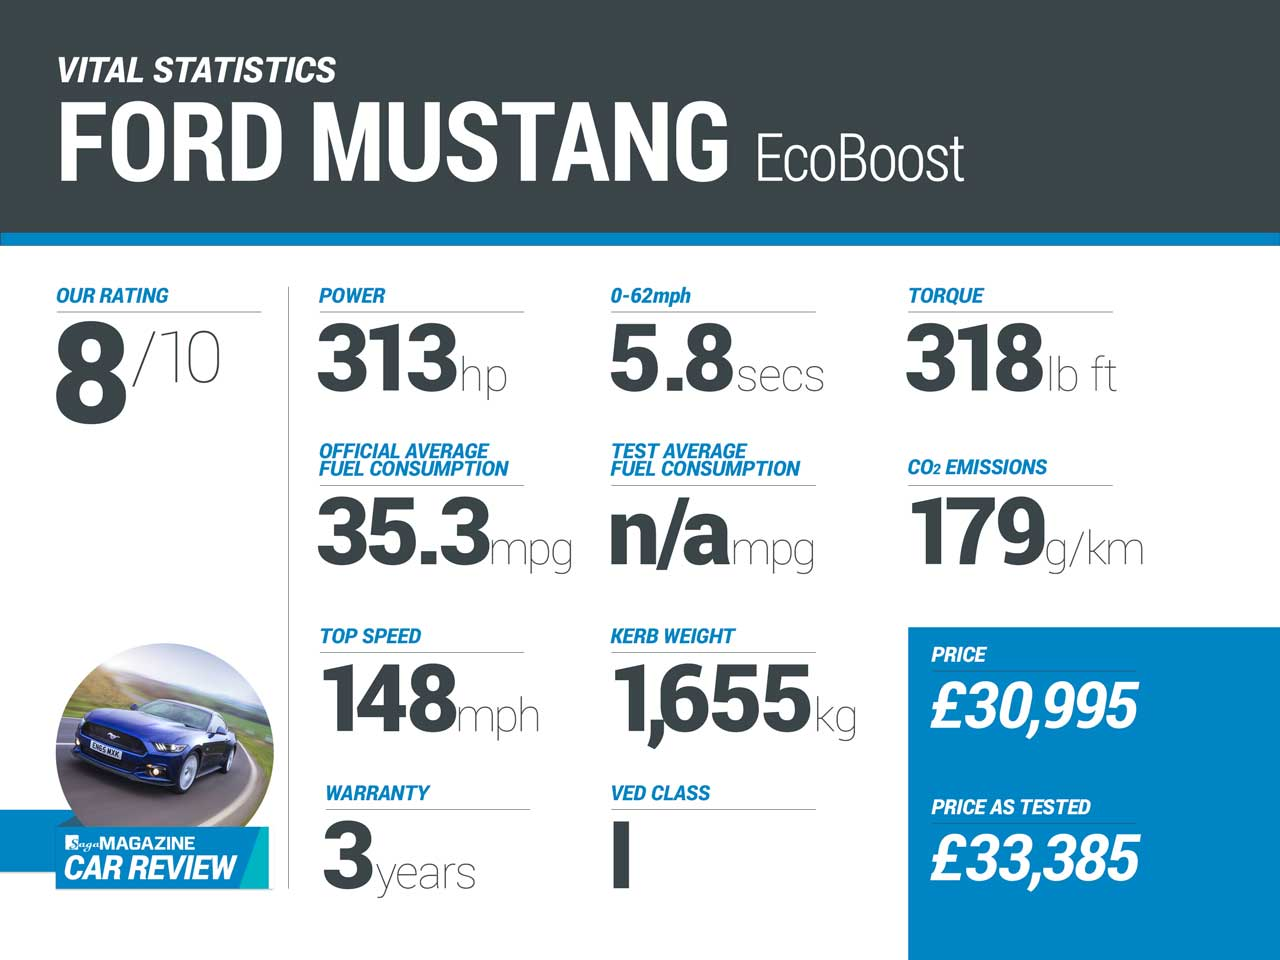 Ford Mustang EcoBoost vital statistics